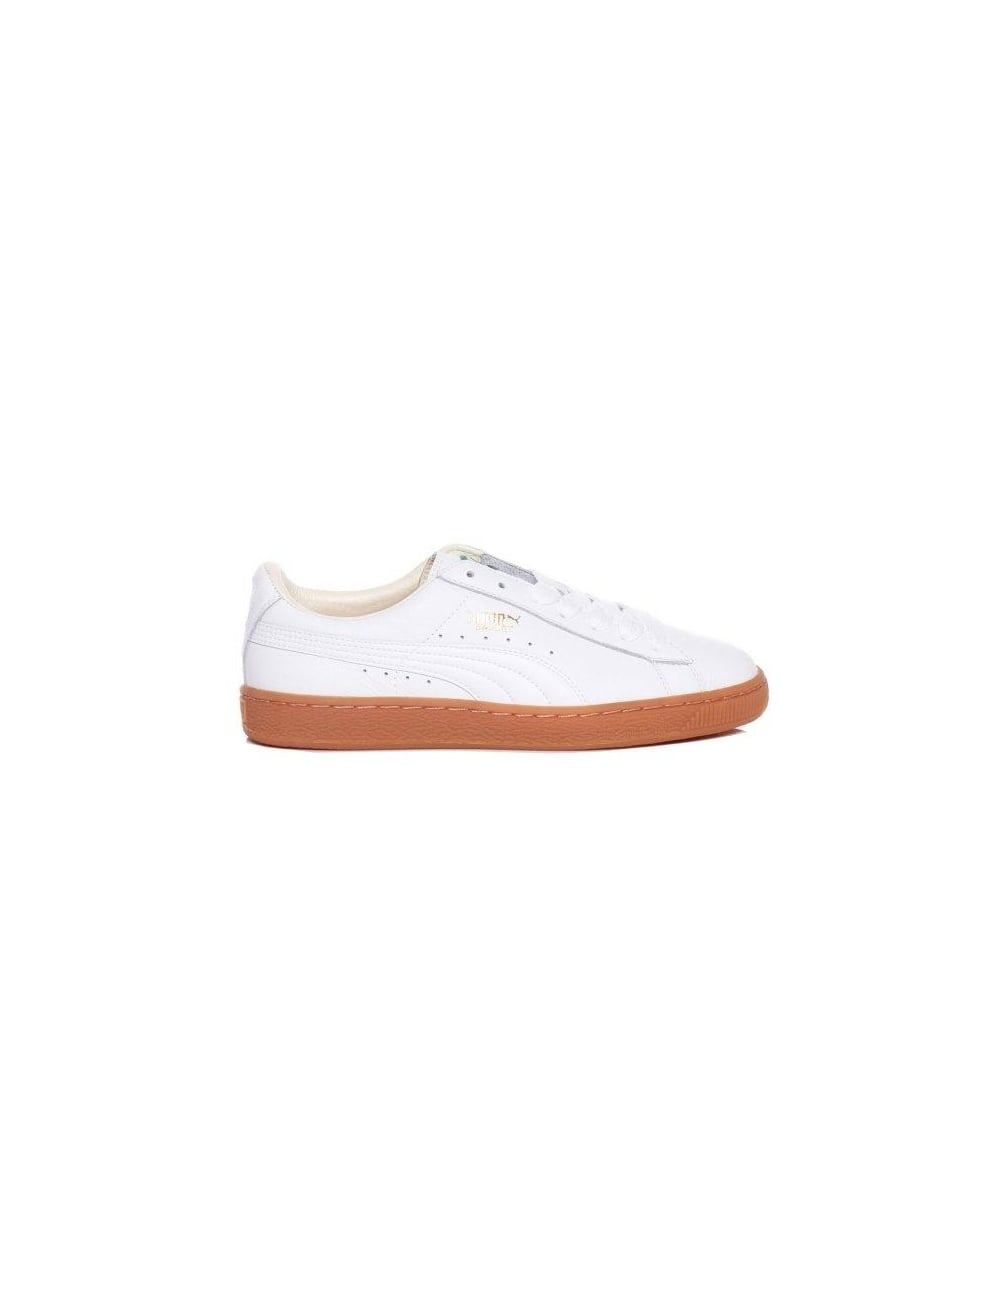 puma basket classic white gum footwear from fat buddha store uk. Black Bedroom Furniture Sets. Home Design Ideas